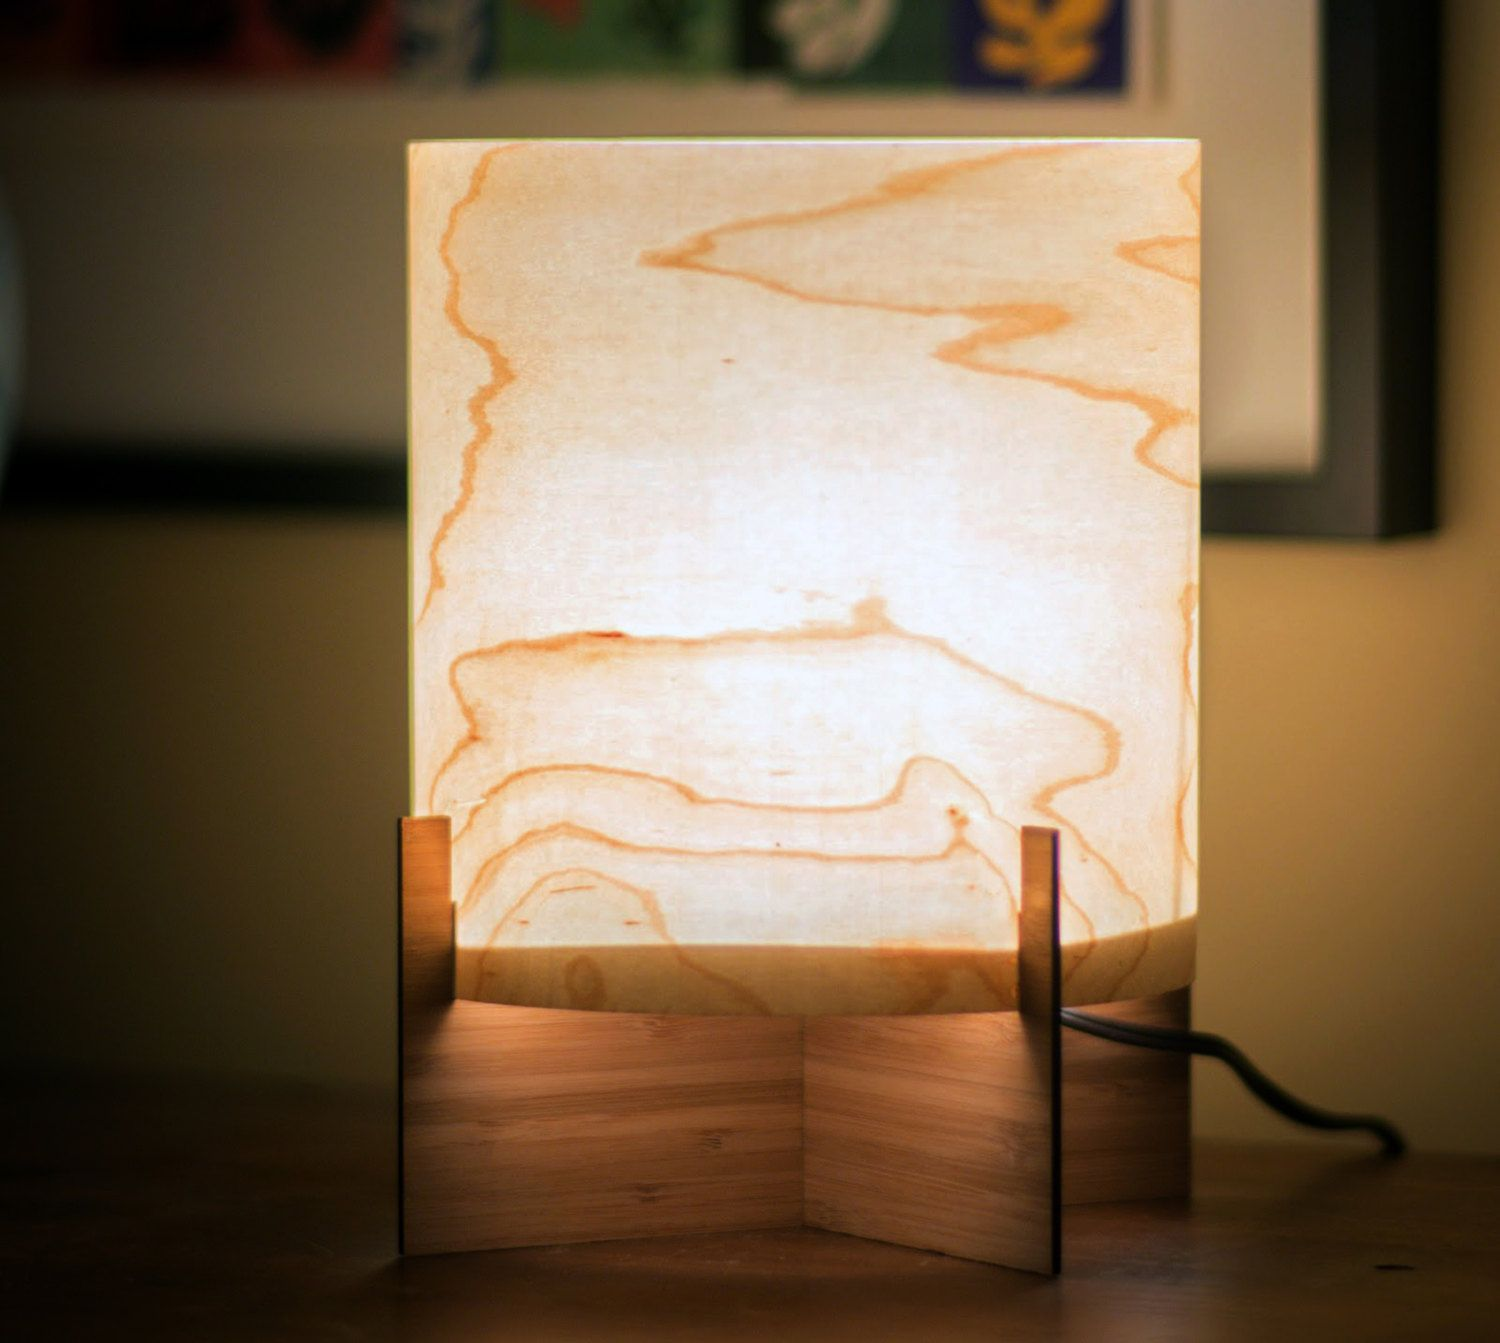 Real wood table lamp modern design in maple veneer bamboo base real wood table lamp modern design in maple veneer bamboo base accent or mood lighting lampshade mozeypictures Gallery